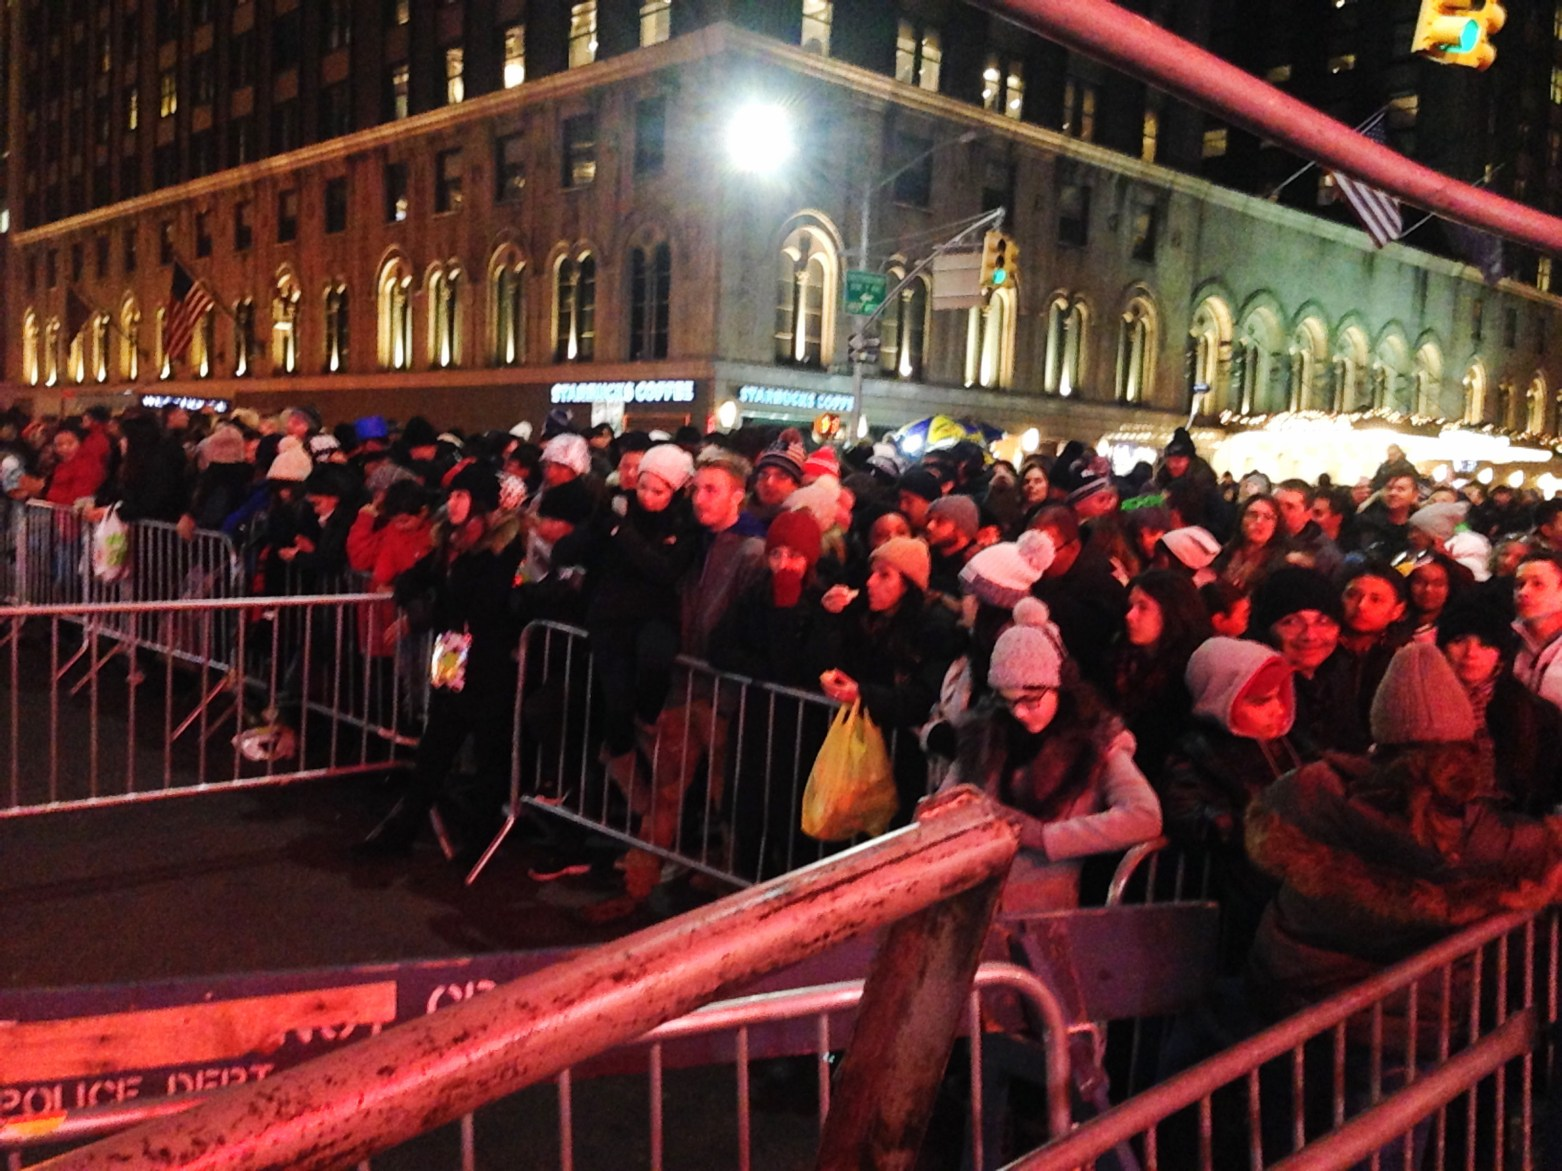 9:54pm Times Square New Year's Eve